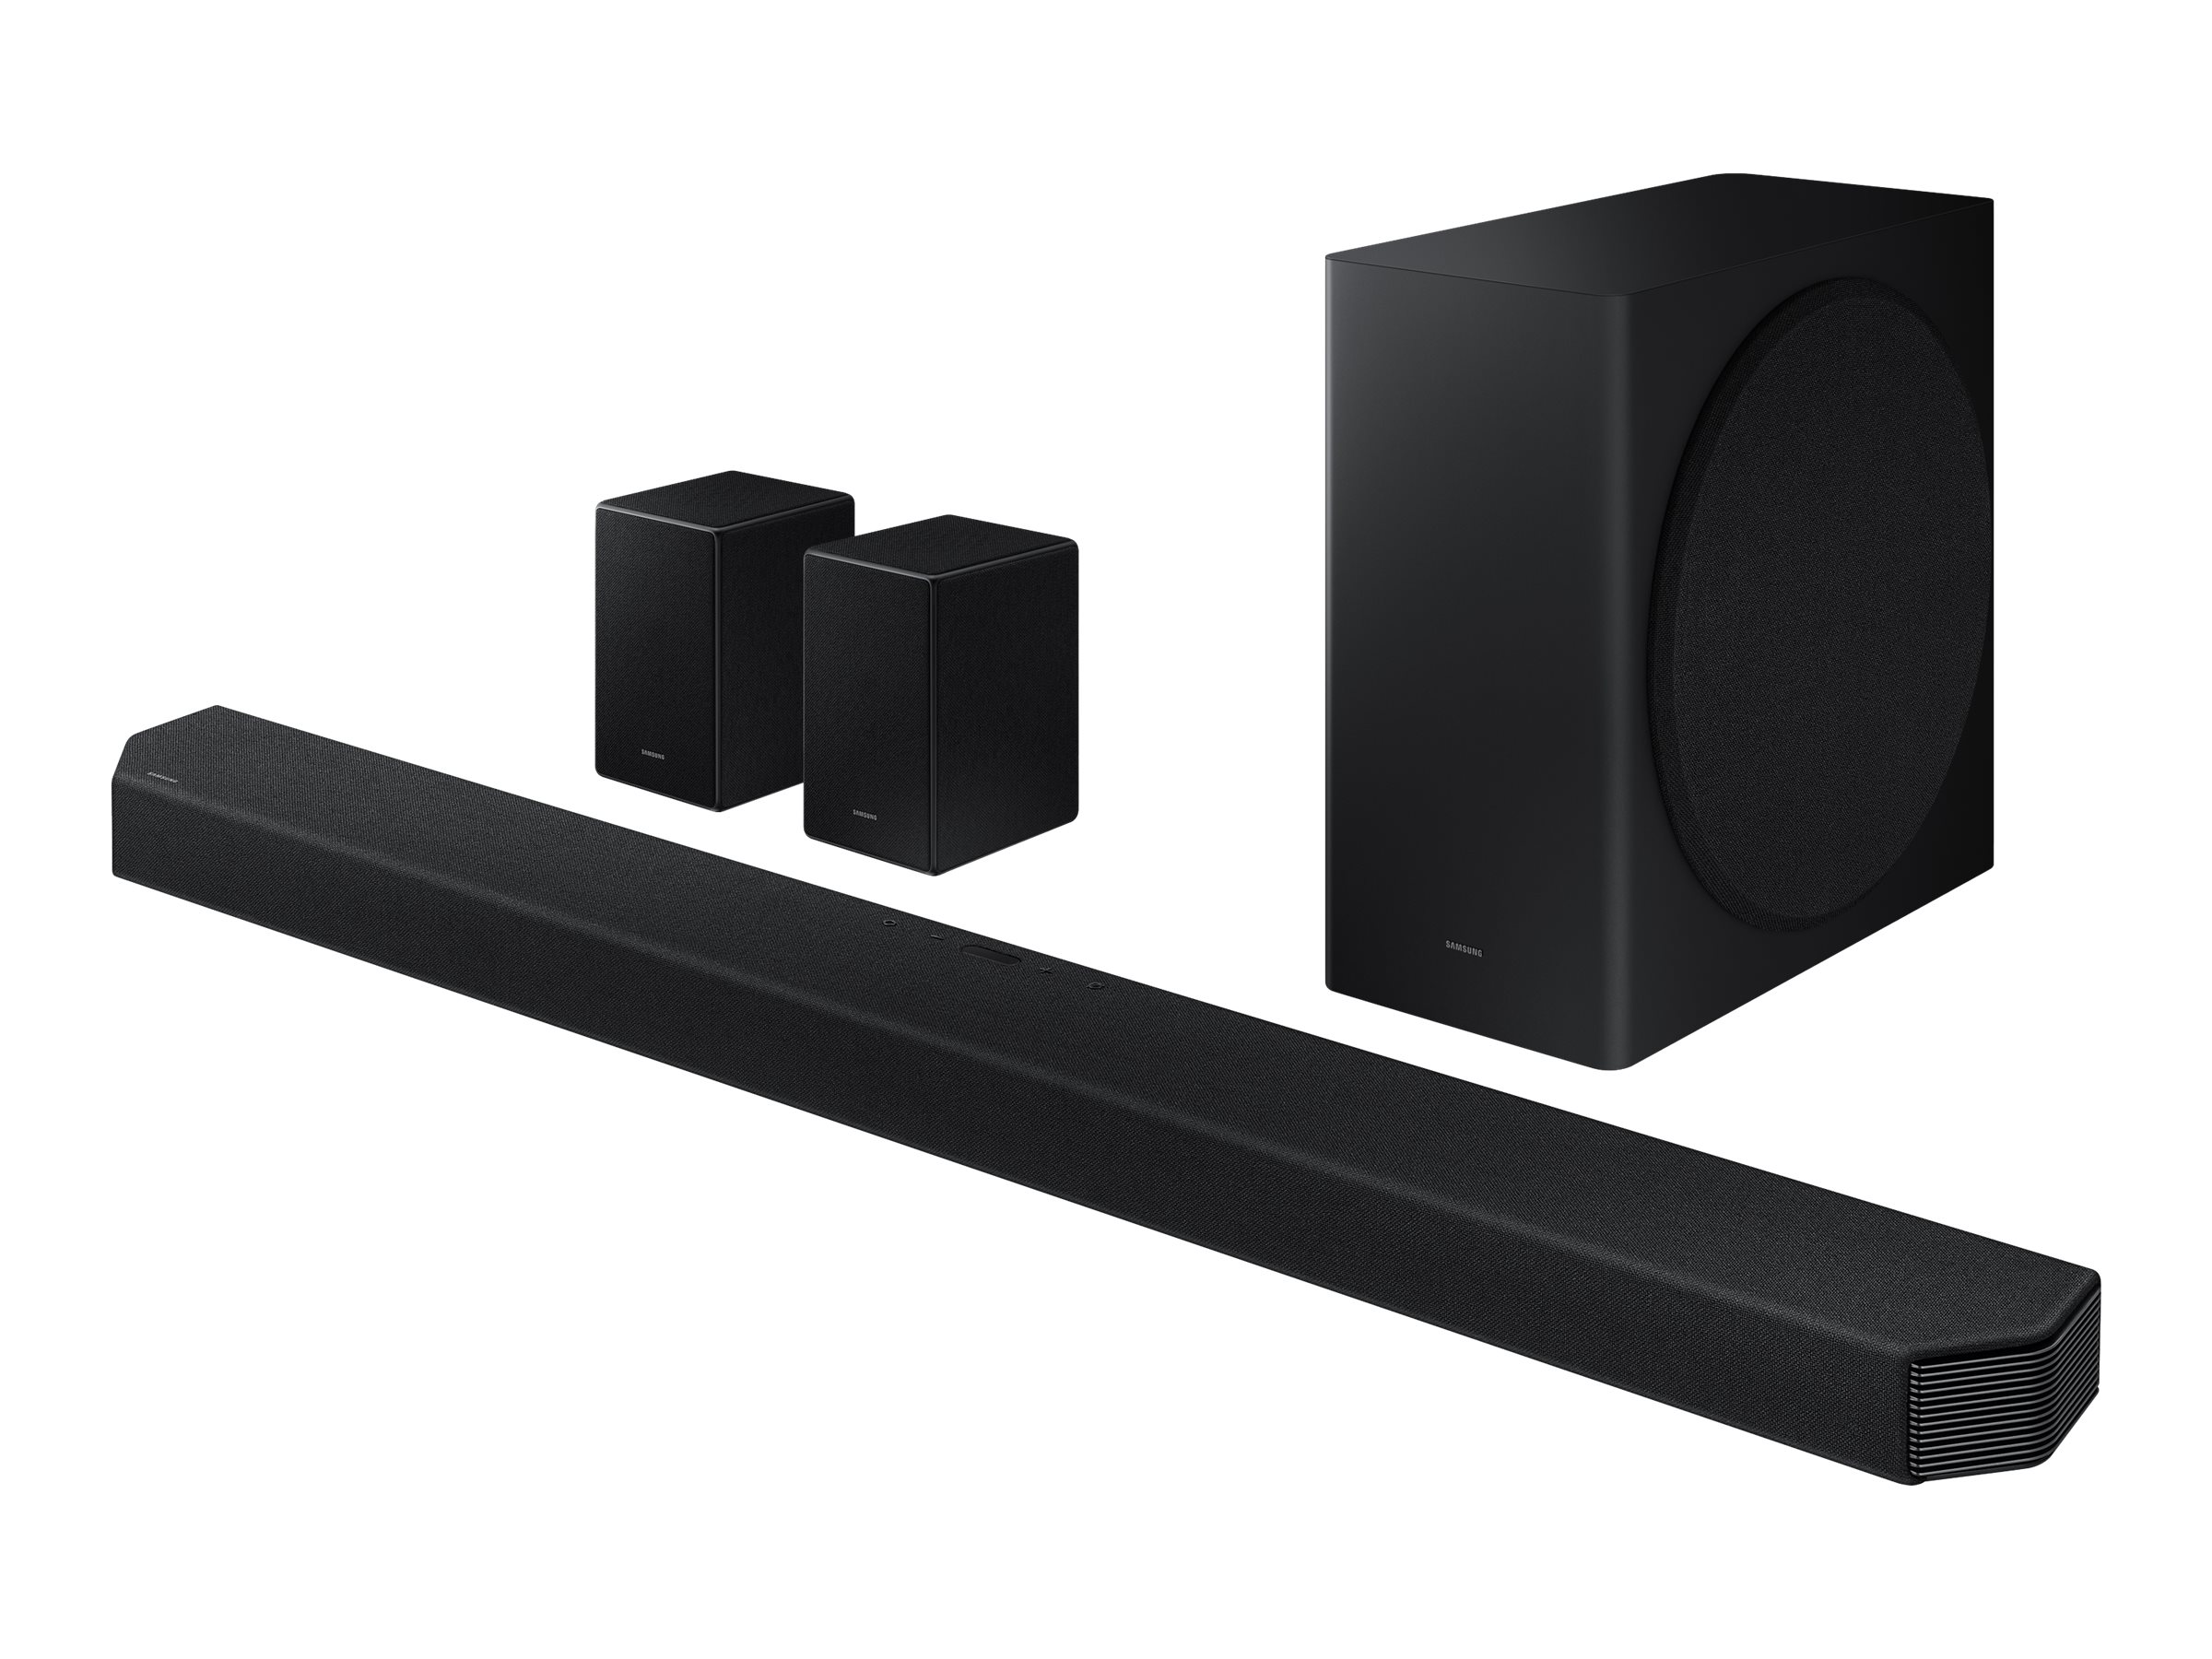 Samsung HW-Q950A - sound bar system - for home theater - wireless